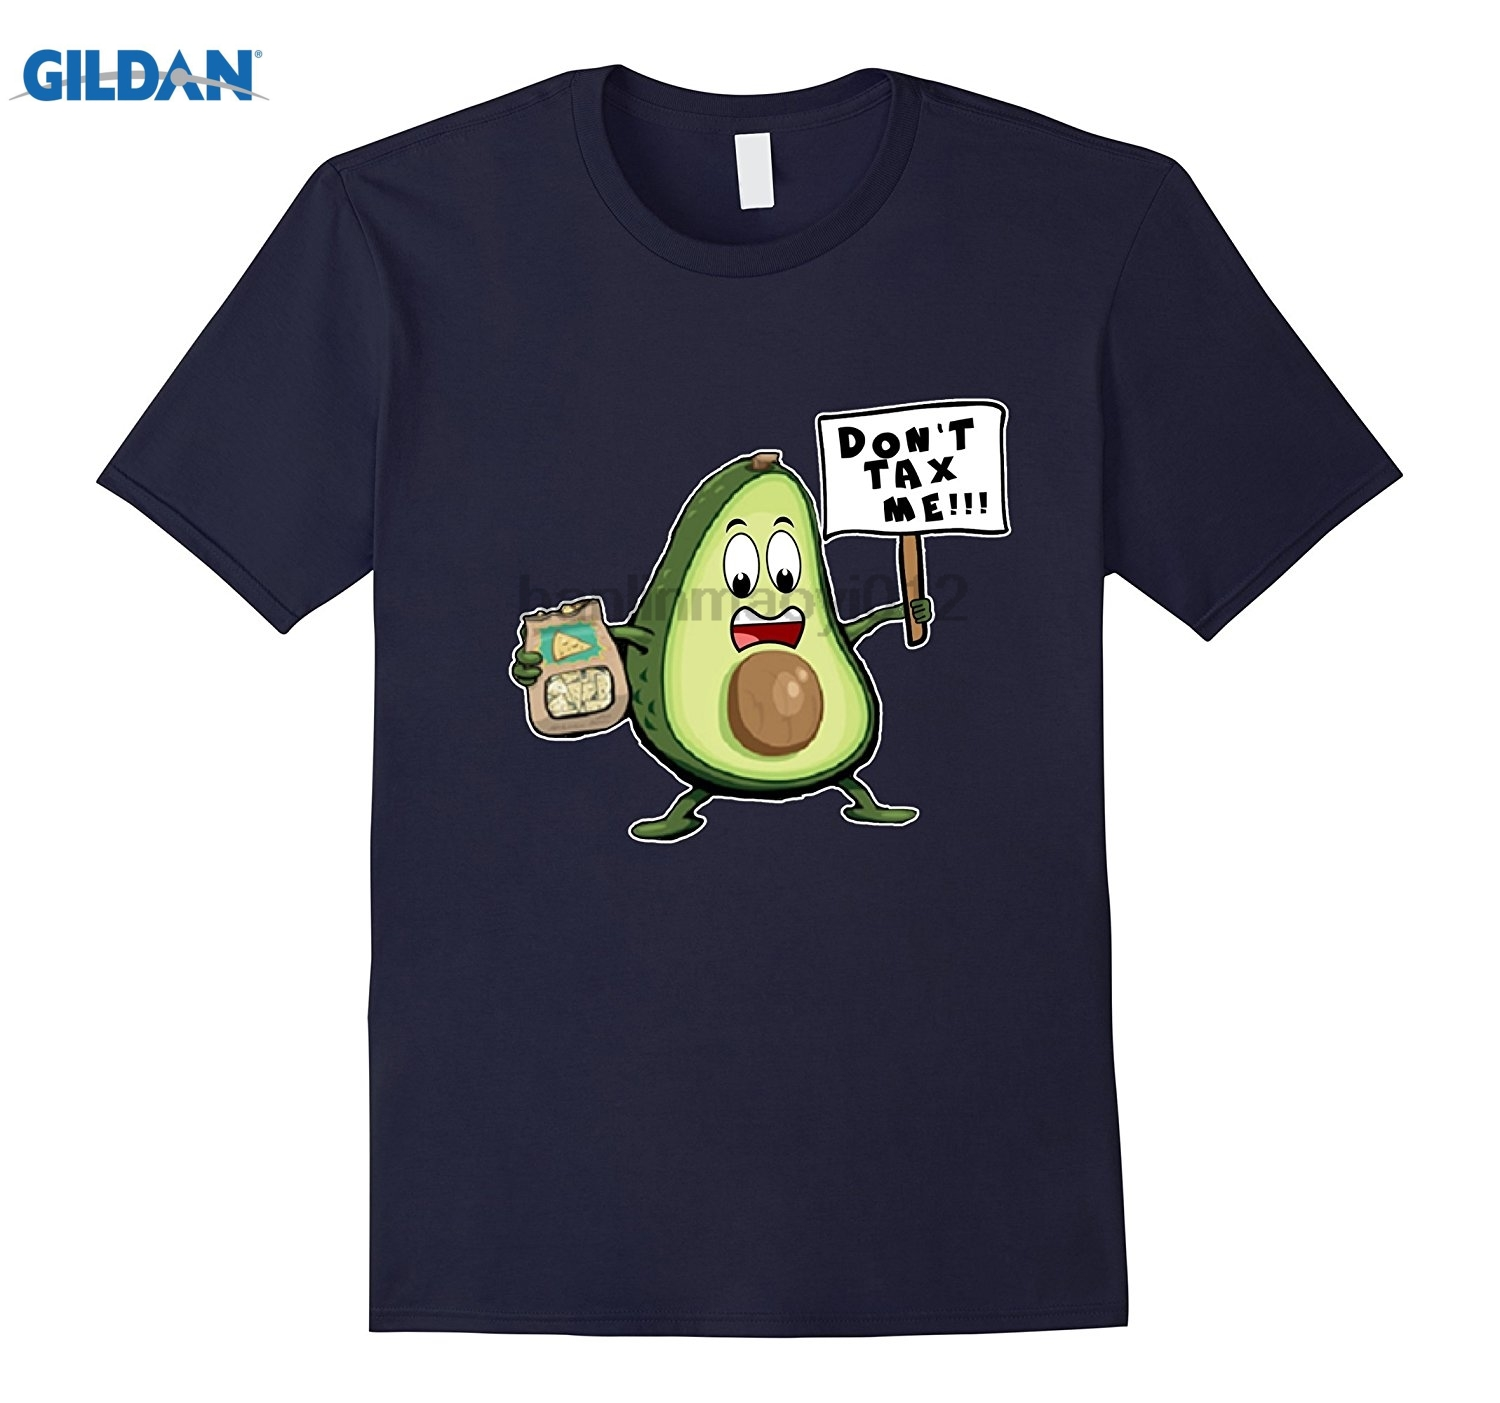 GILDAN Dont Tax Me Avocado Funny T-shirt Sarcastic Comic Support Womens T-shirt ...